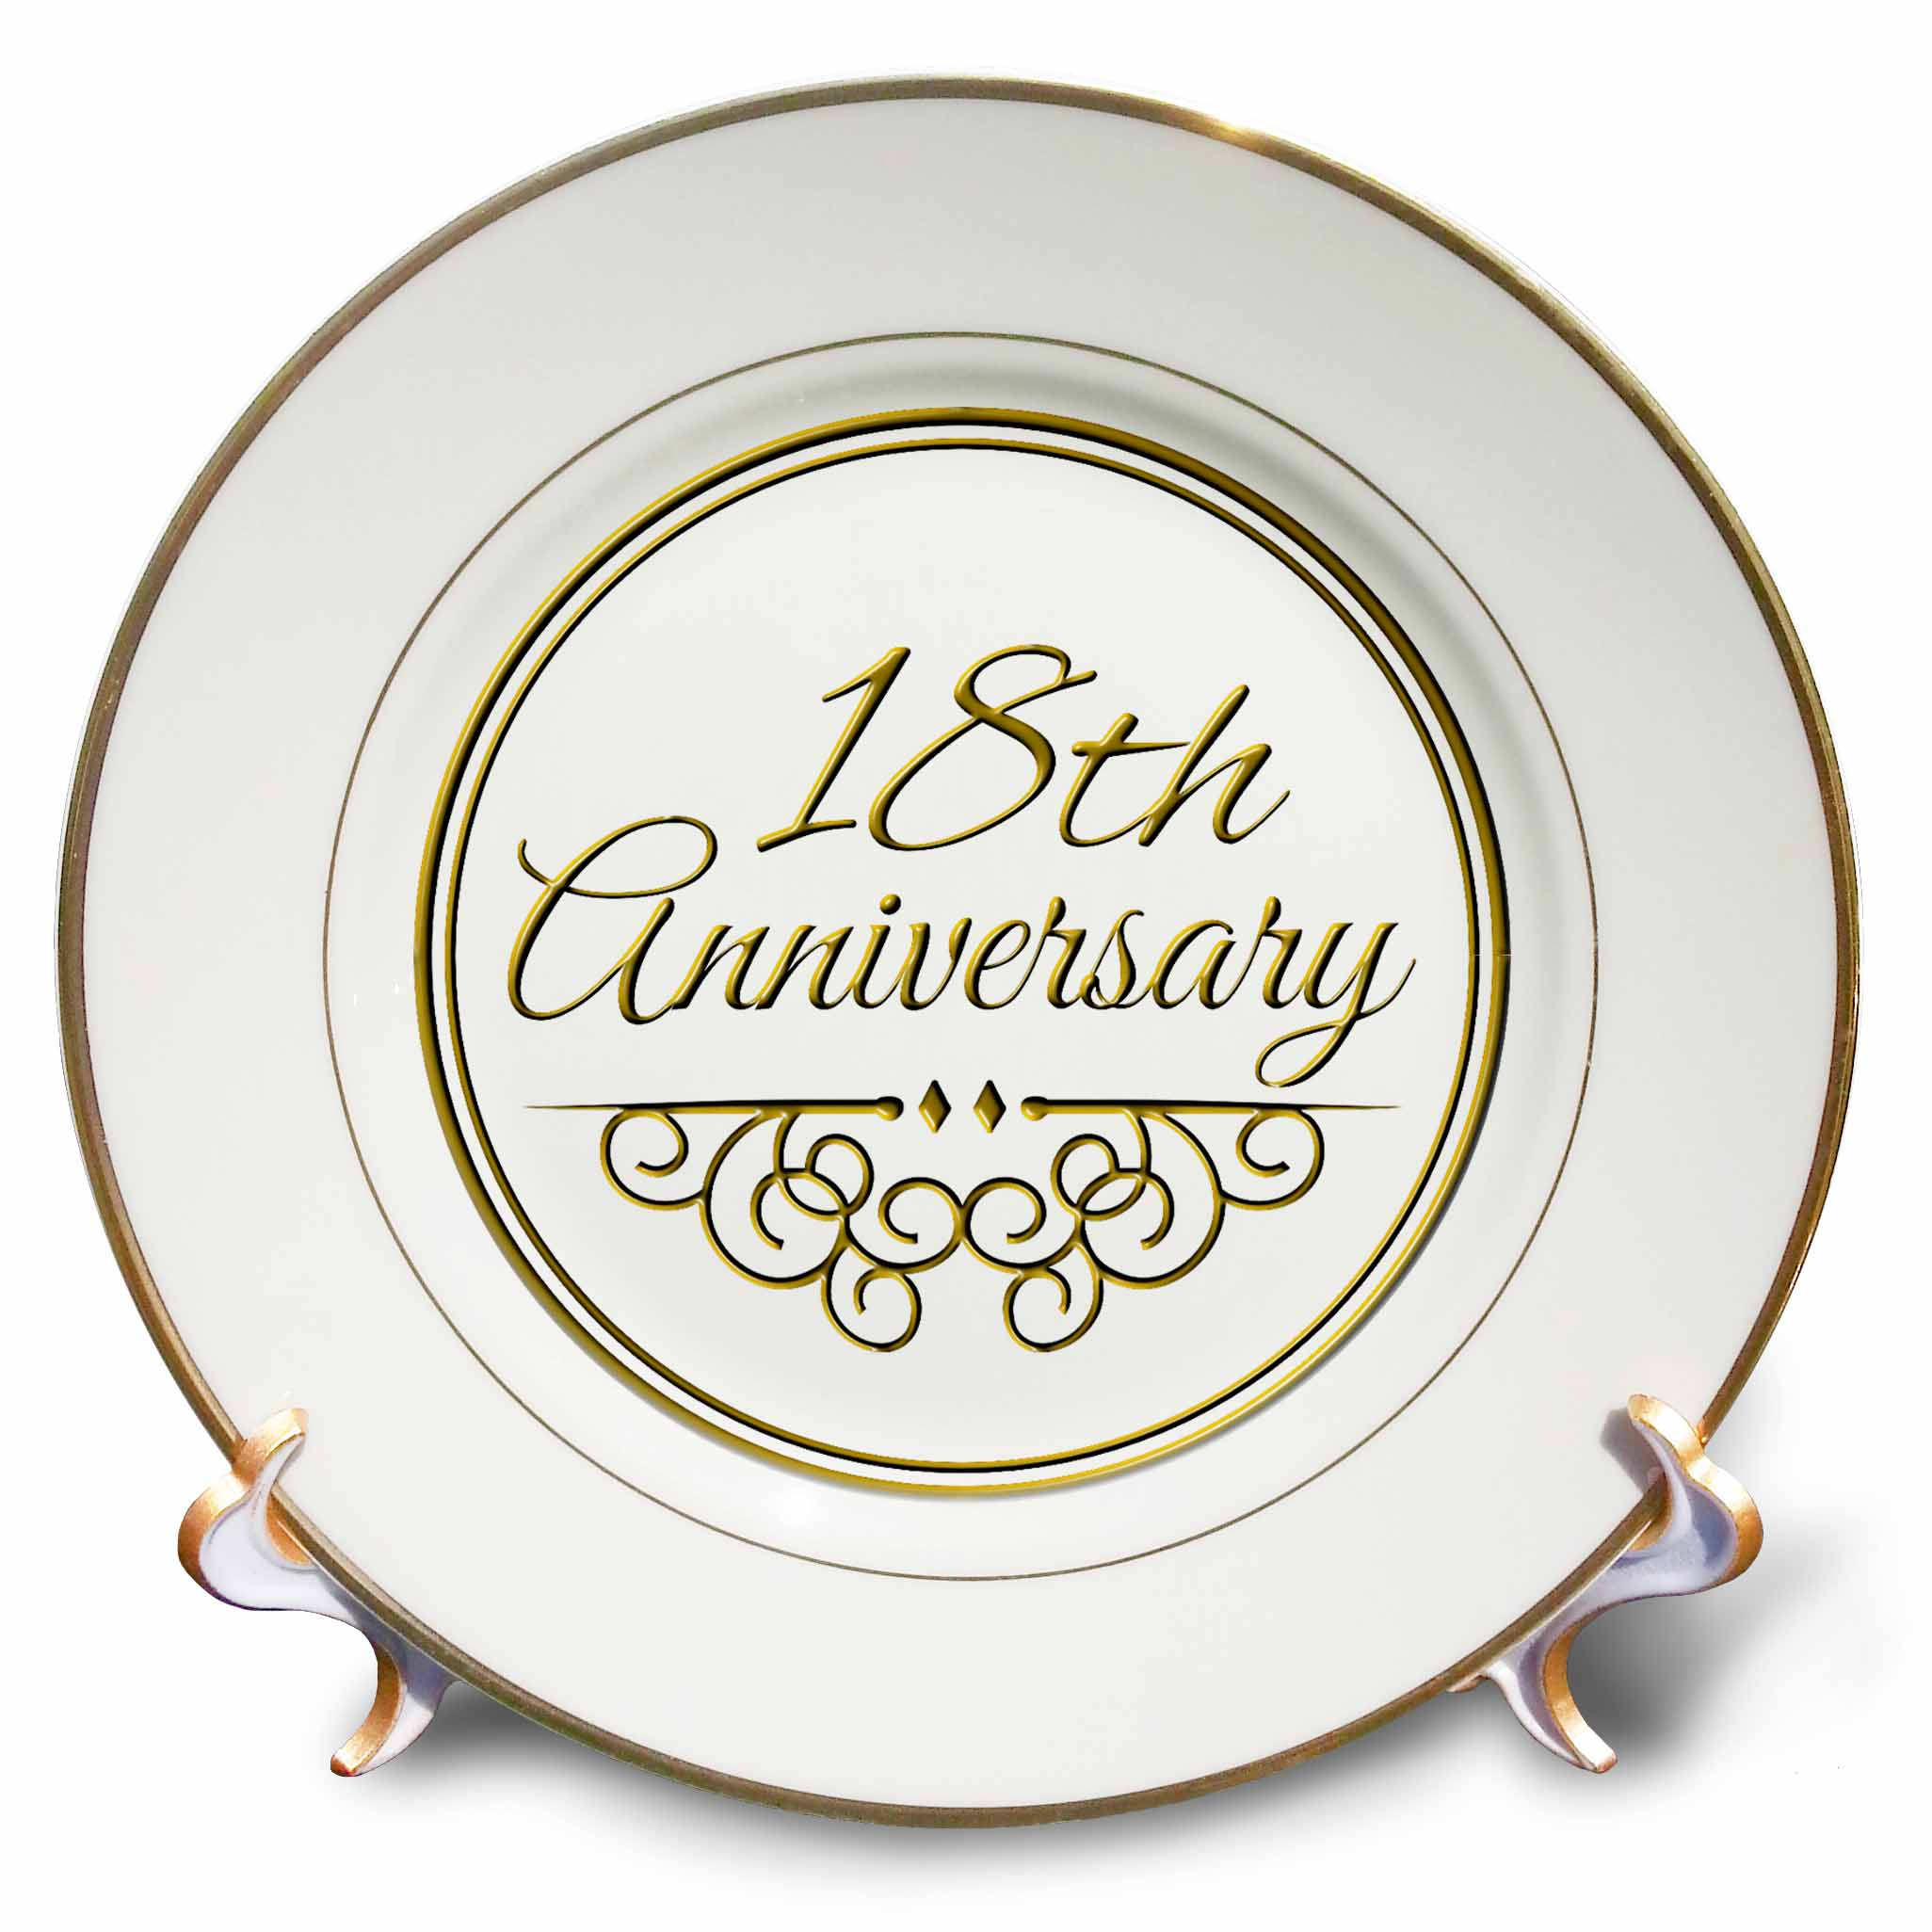 3dRose 18th Anniversary gift - gold text for celebrating wedding anniversaries - 18 years married together, Porcelain Plate, 8-inch